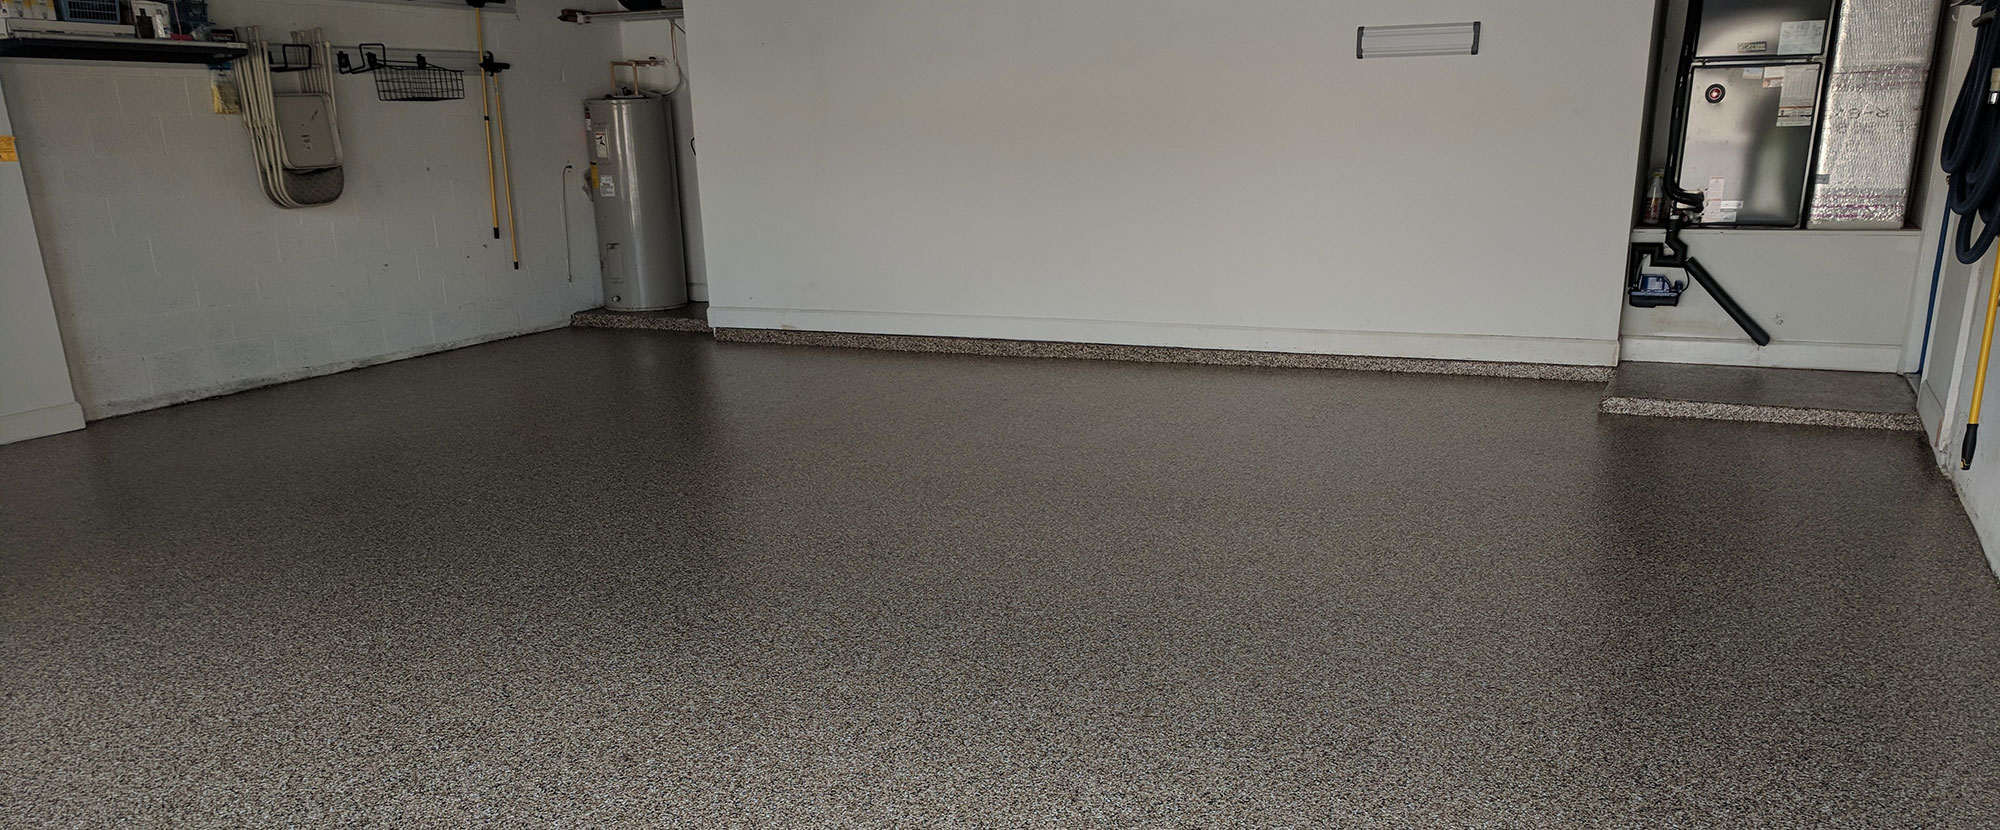 Garage Experts Epoxy Floor Jc Elite Epoxy Flooring Lantana Palm Beach Gardens Jupiter